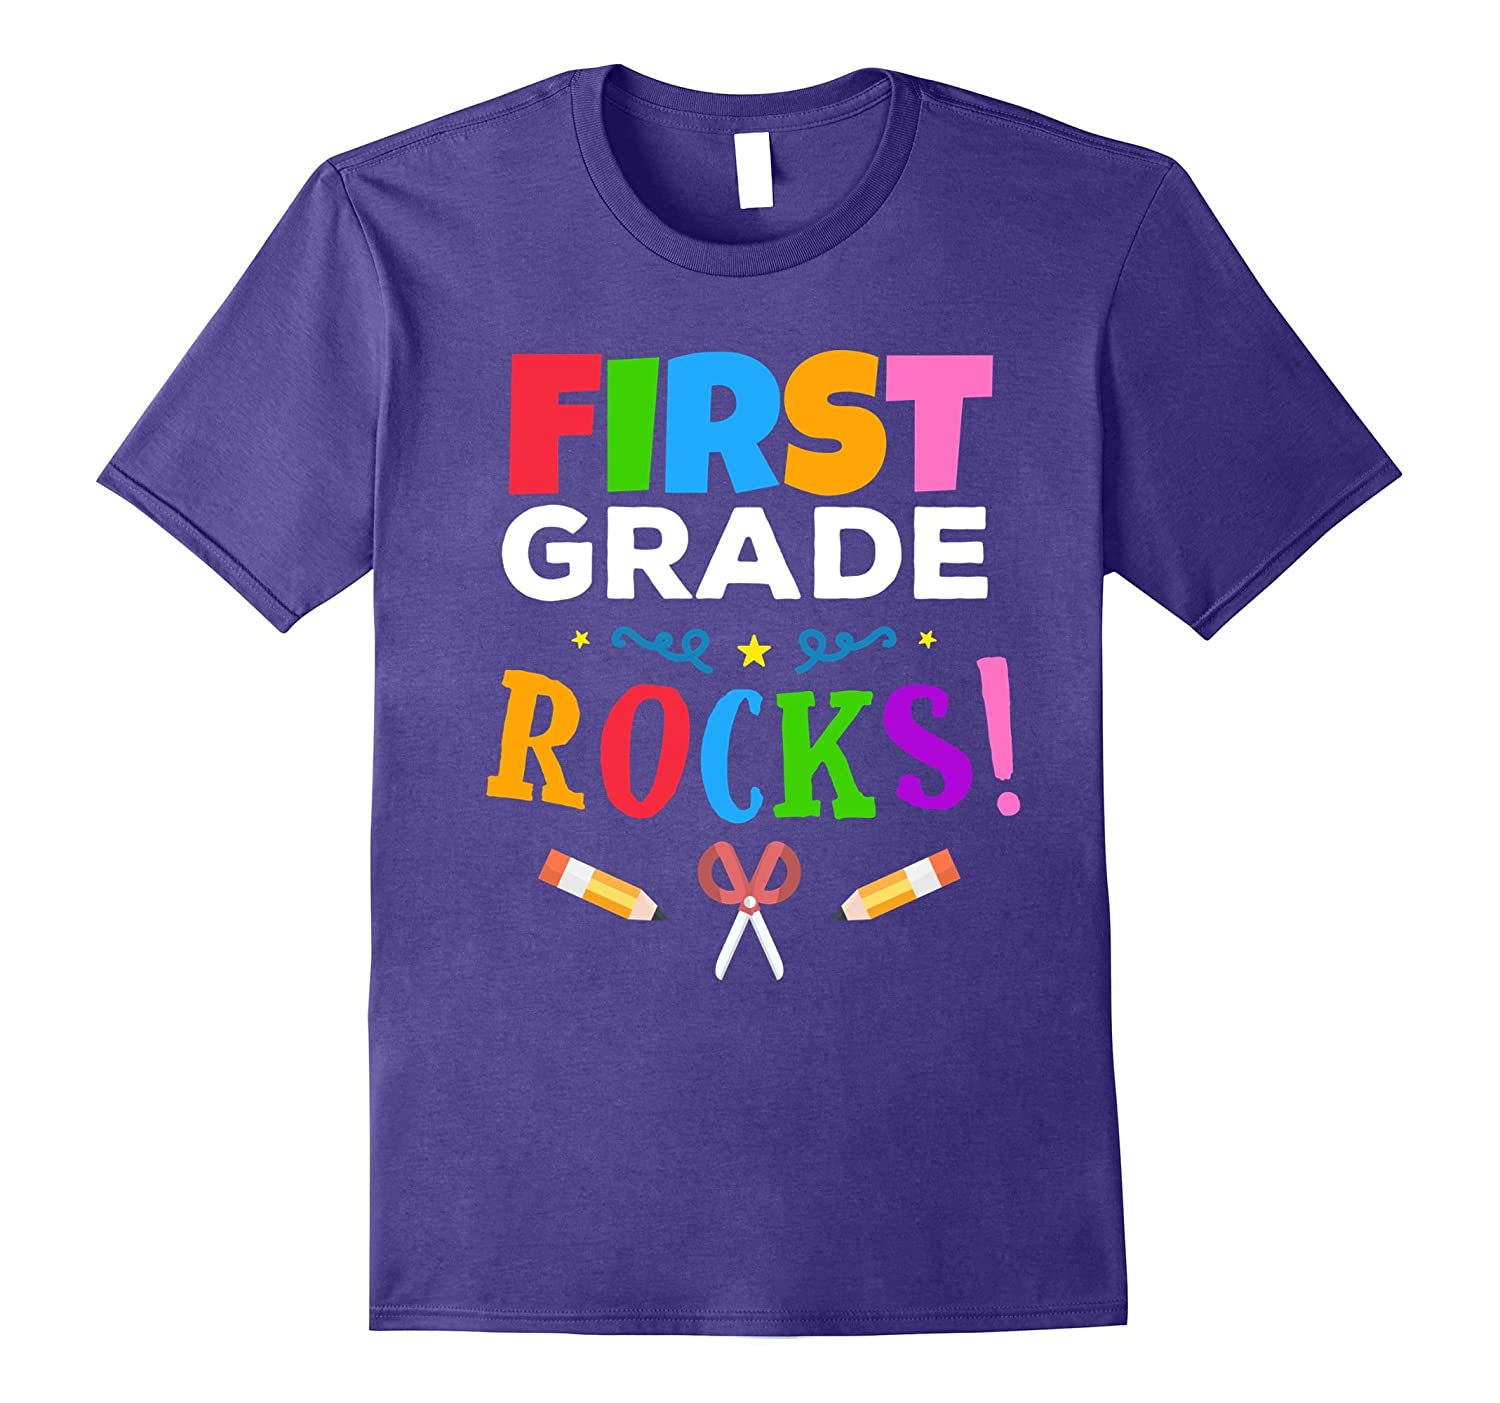 First Grade Rocks T-Shirt for Students and Teachers-BN